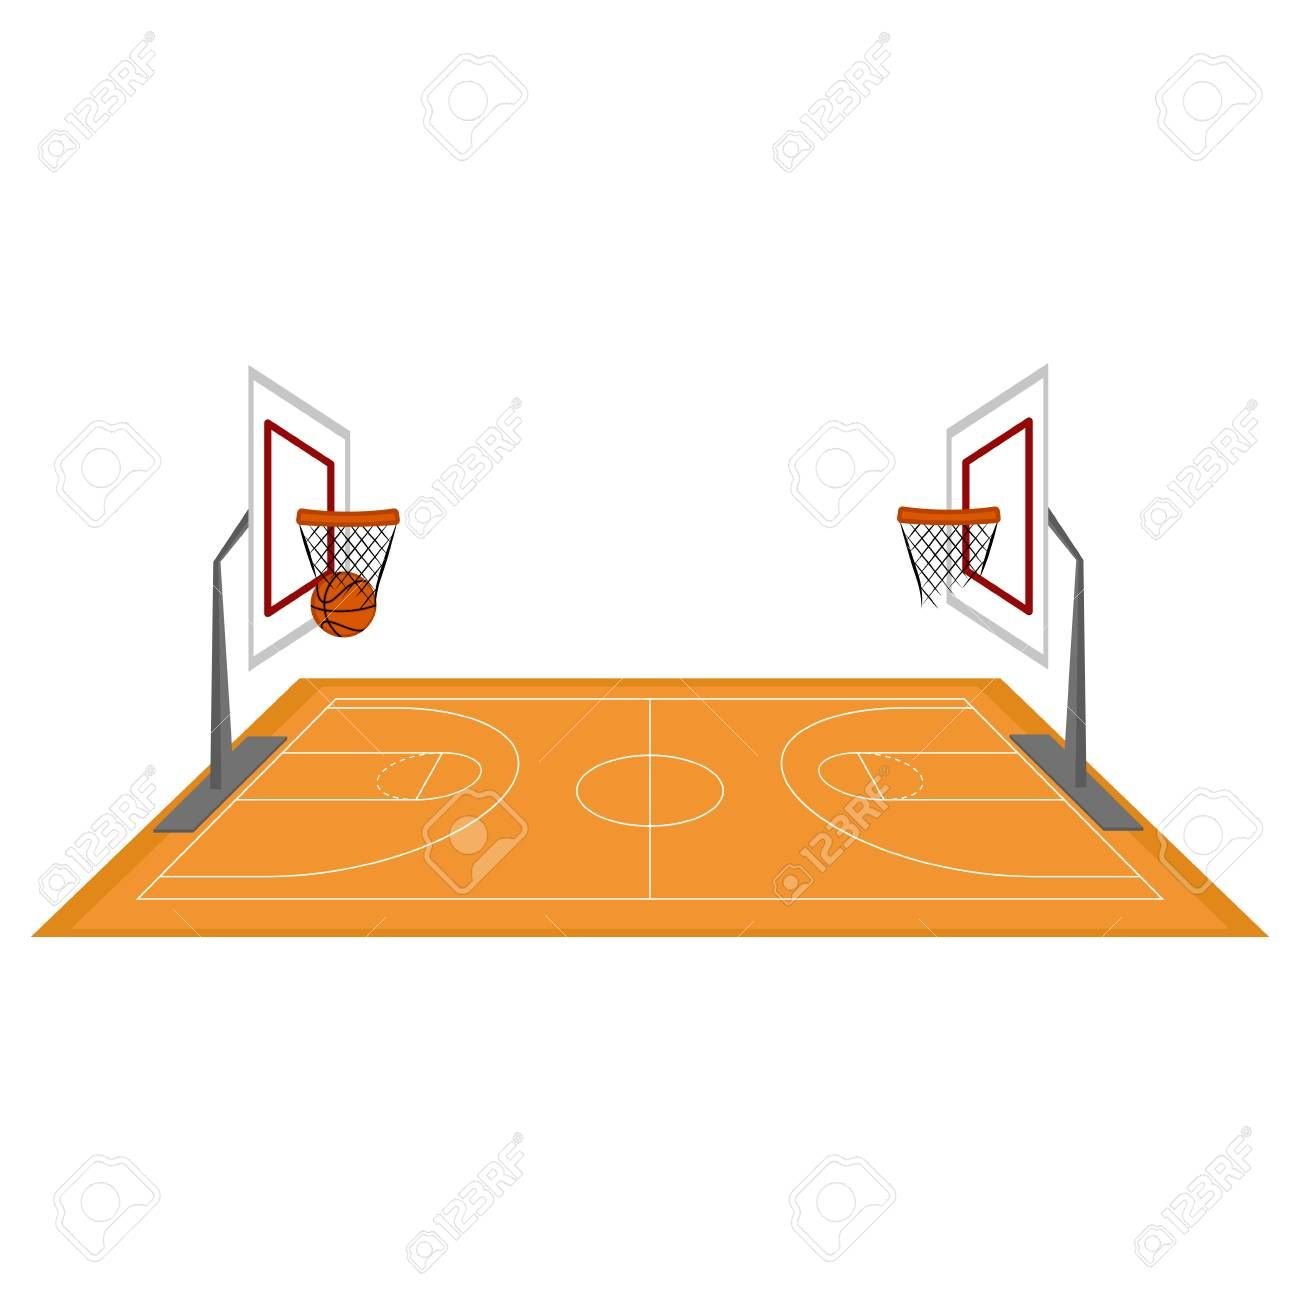 Side View Of A Basketball Court Vector Illustration Design Ad Basketball View Side Co Vector Illustration Design Creative Flyer Design Flyer Design